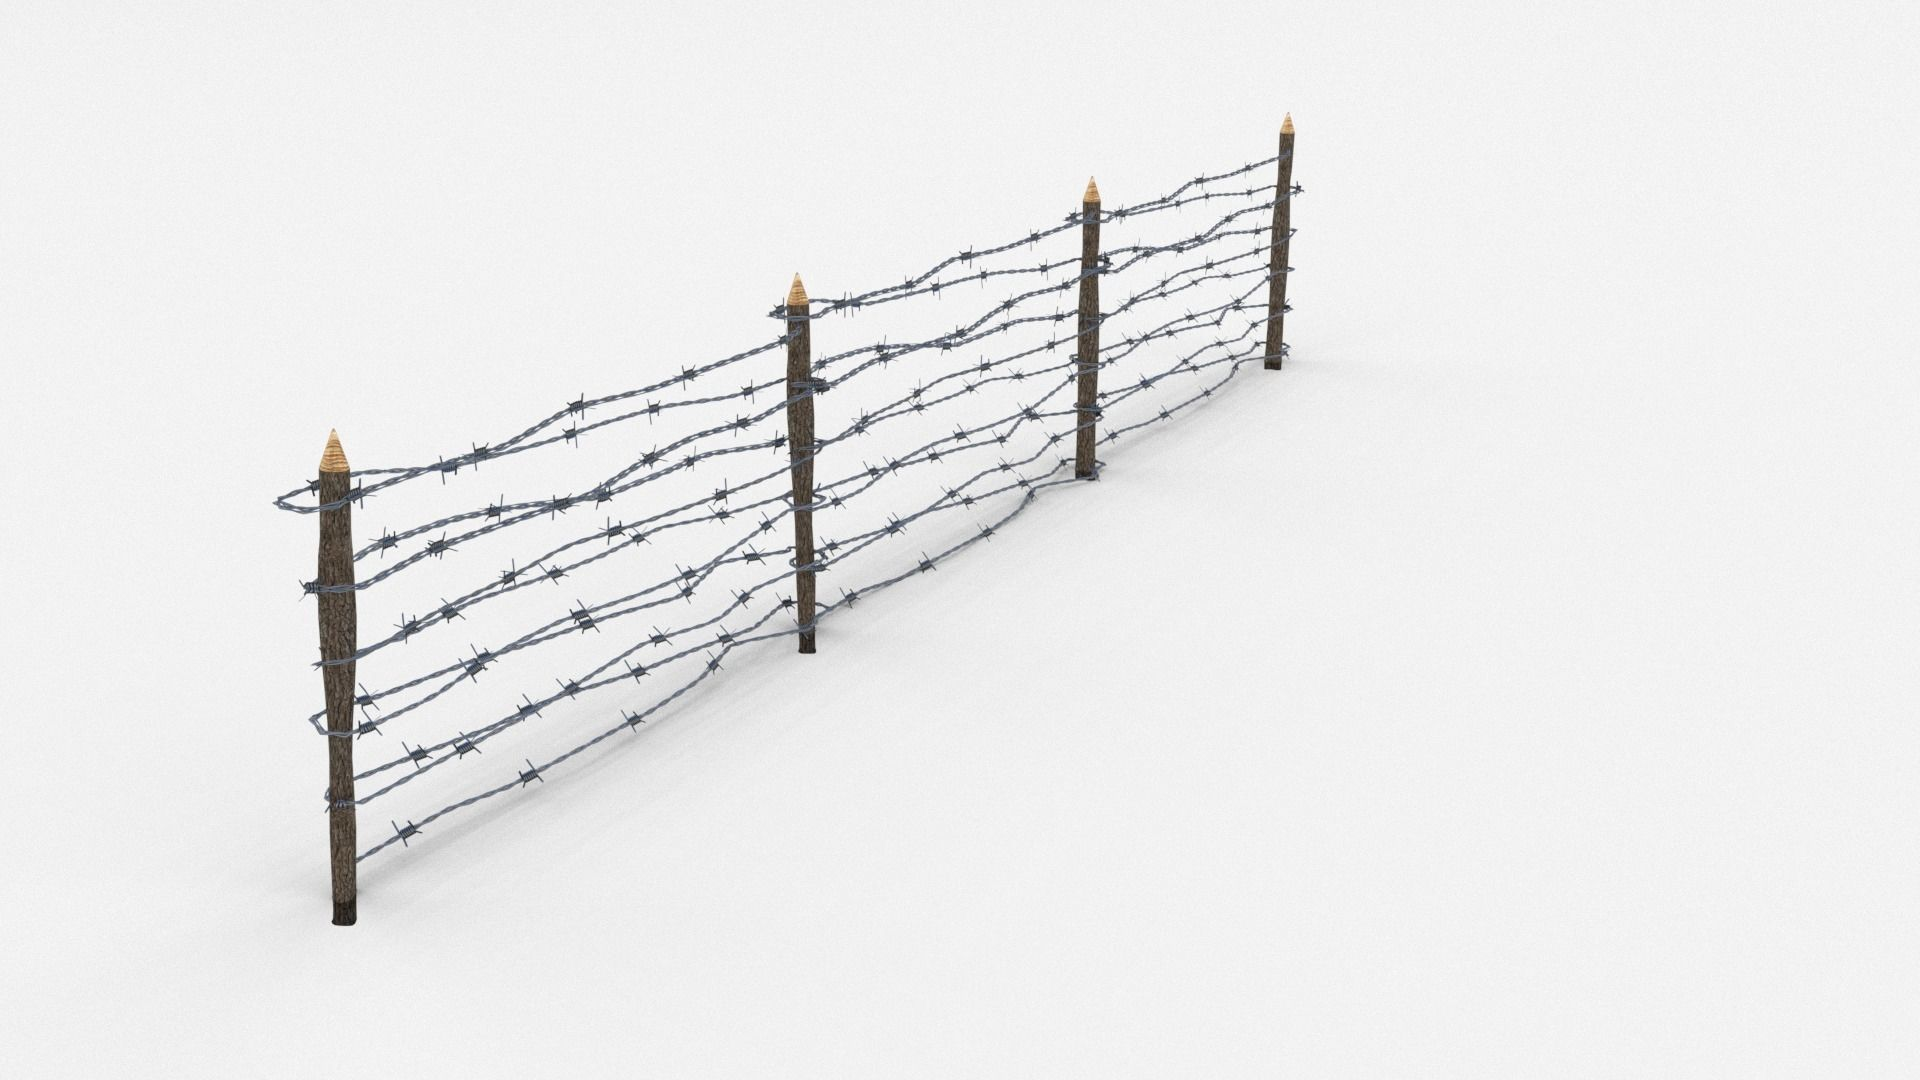 Triple Strand Concertina Wire Obstacle